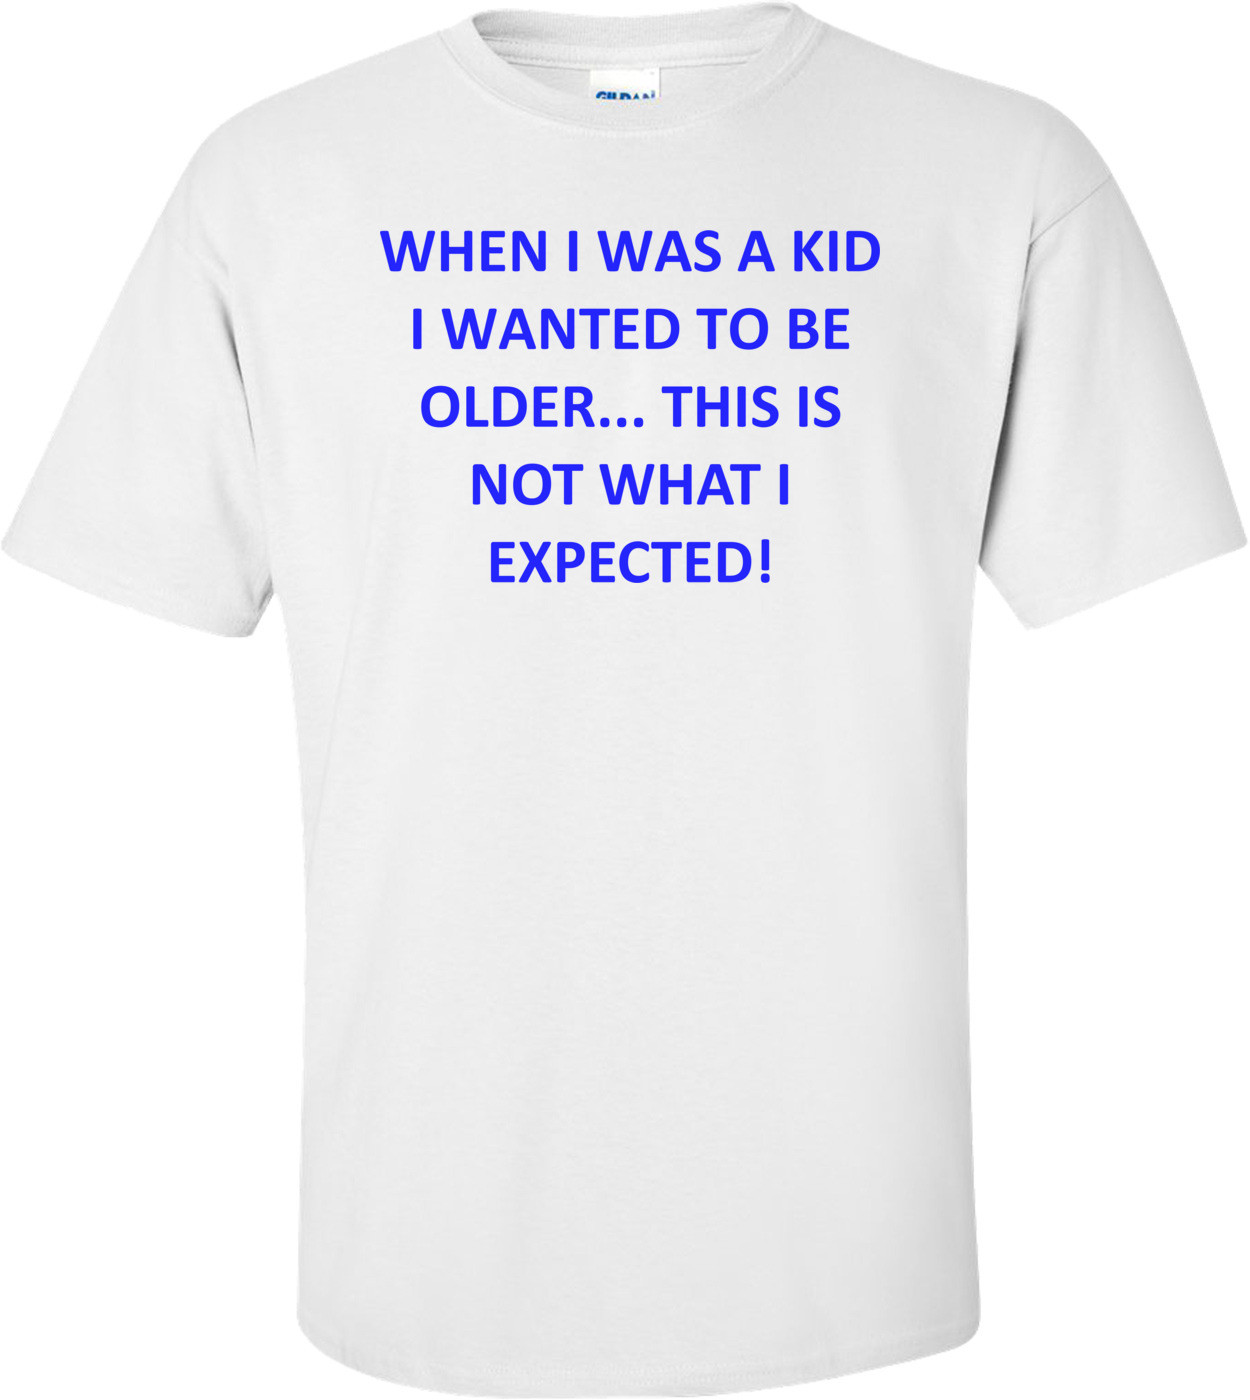 WHEN I WAS A KID I WANTED TO BE OLDER... THIS IS NOT WHAT I EXPECTED! Shirt